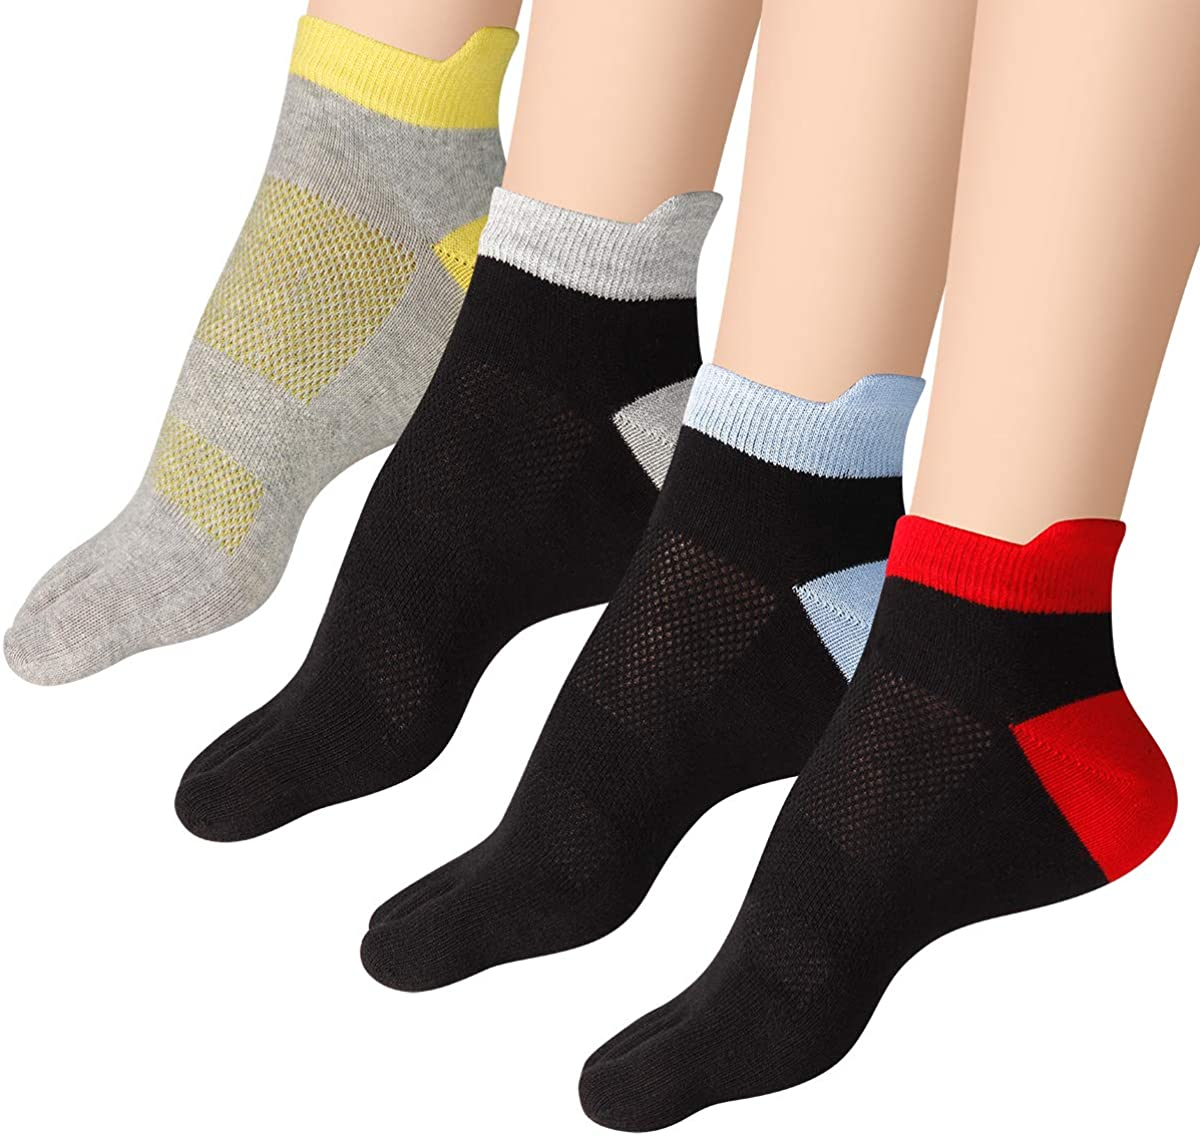 Mens Toe Socks 5 Fingers No Show Cotton Mesh Wicking Athletic Running walking Socks 4 Pack By Cosfash